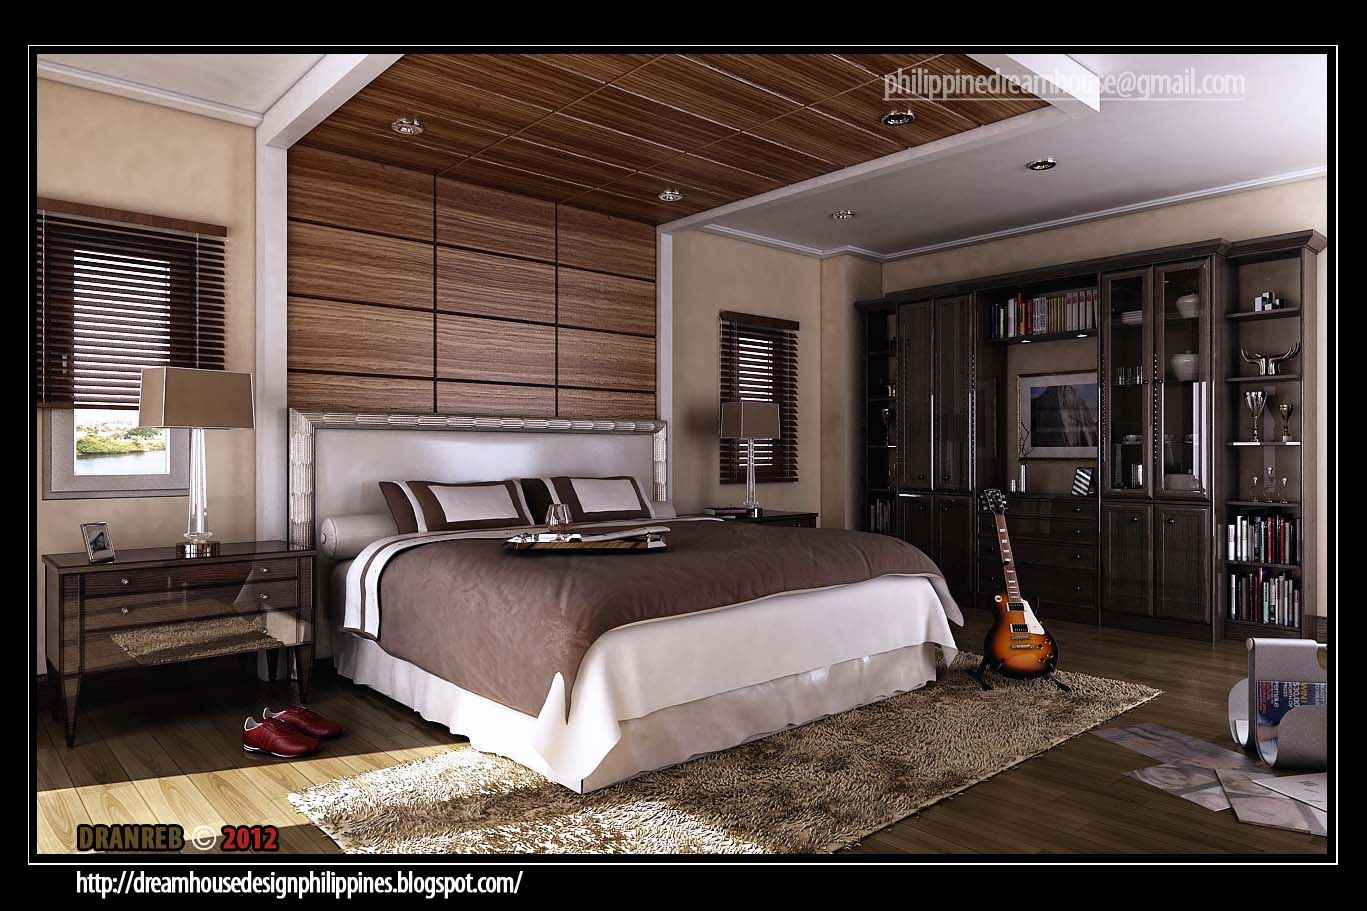 architecture bed design enchanting architecture bedroom designs - Architecture Bedroom Designs